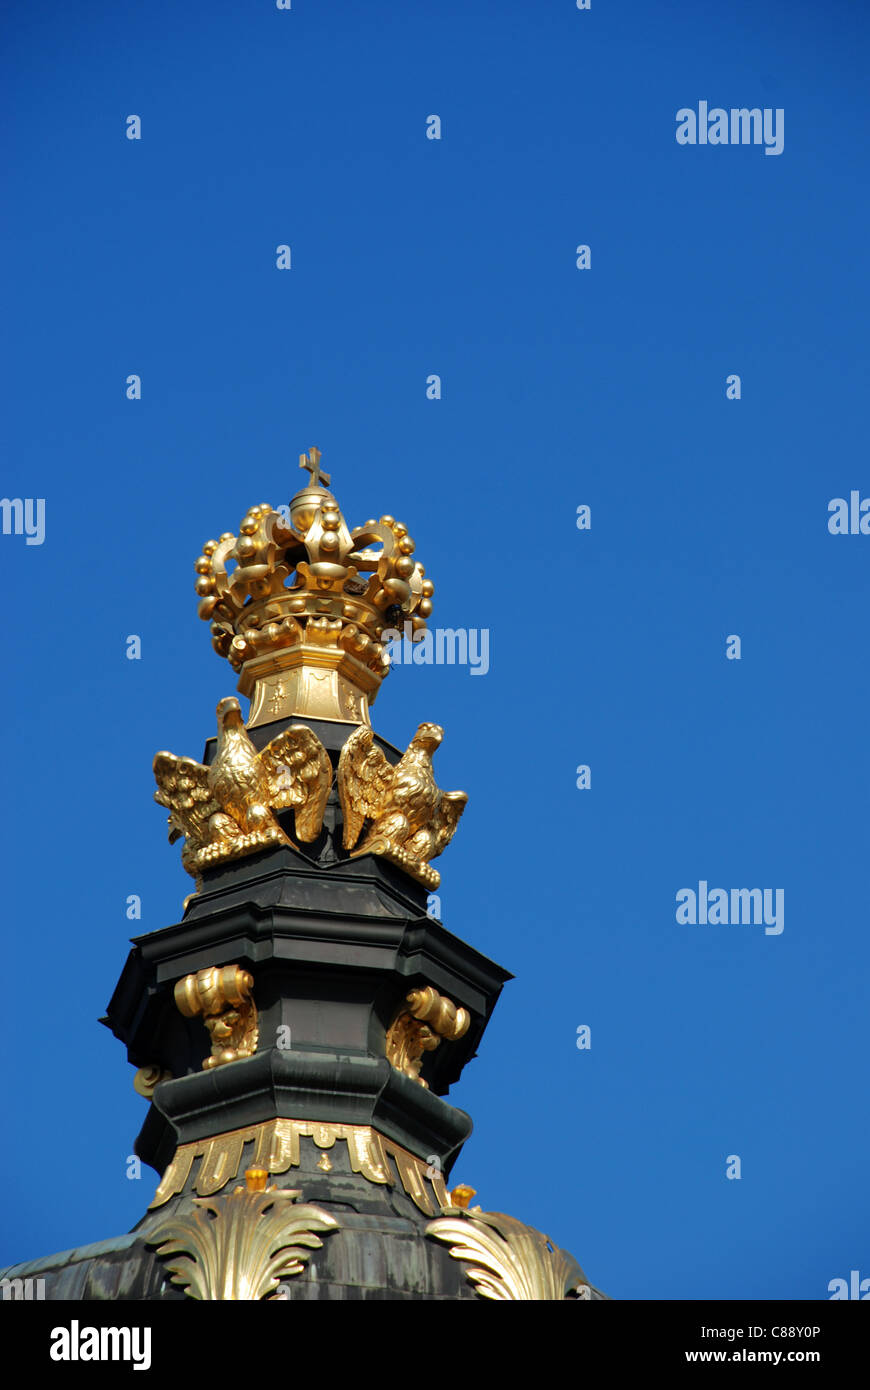 Crown Gate at the Zwinger in Dresden - Stock Image